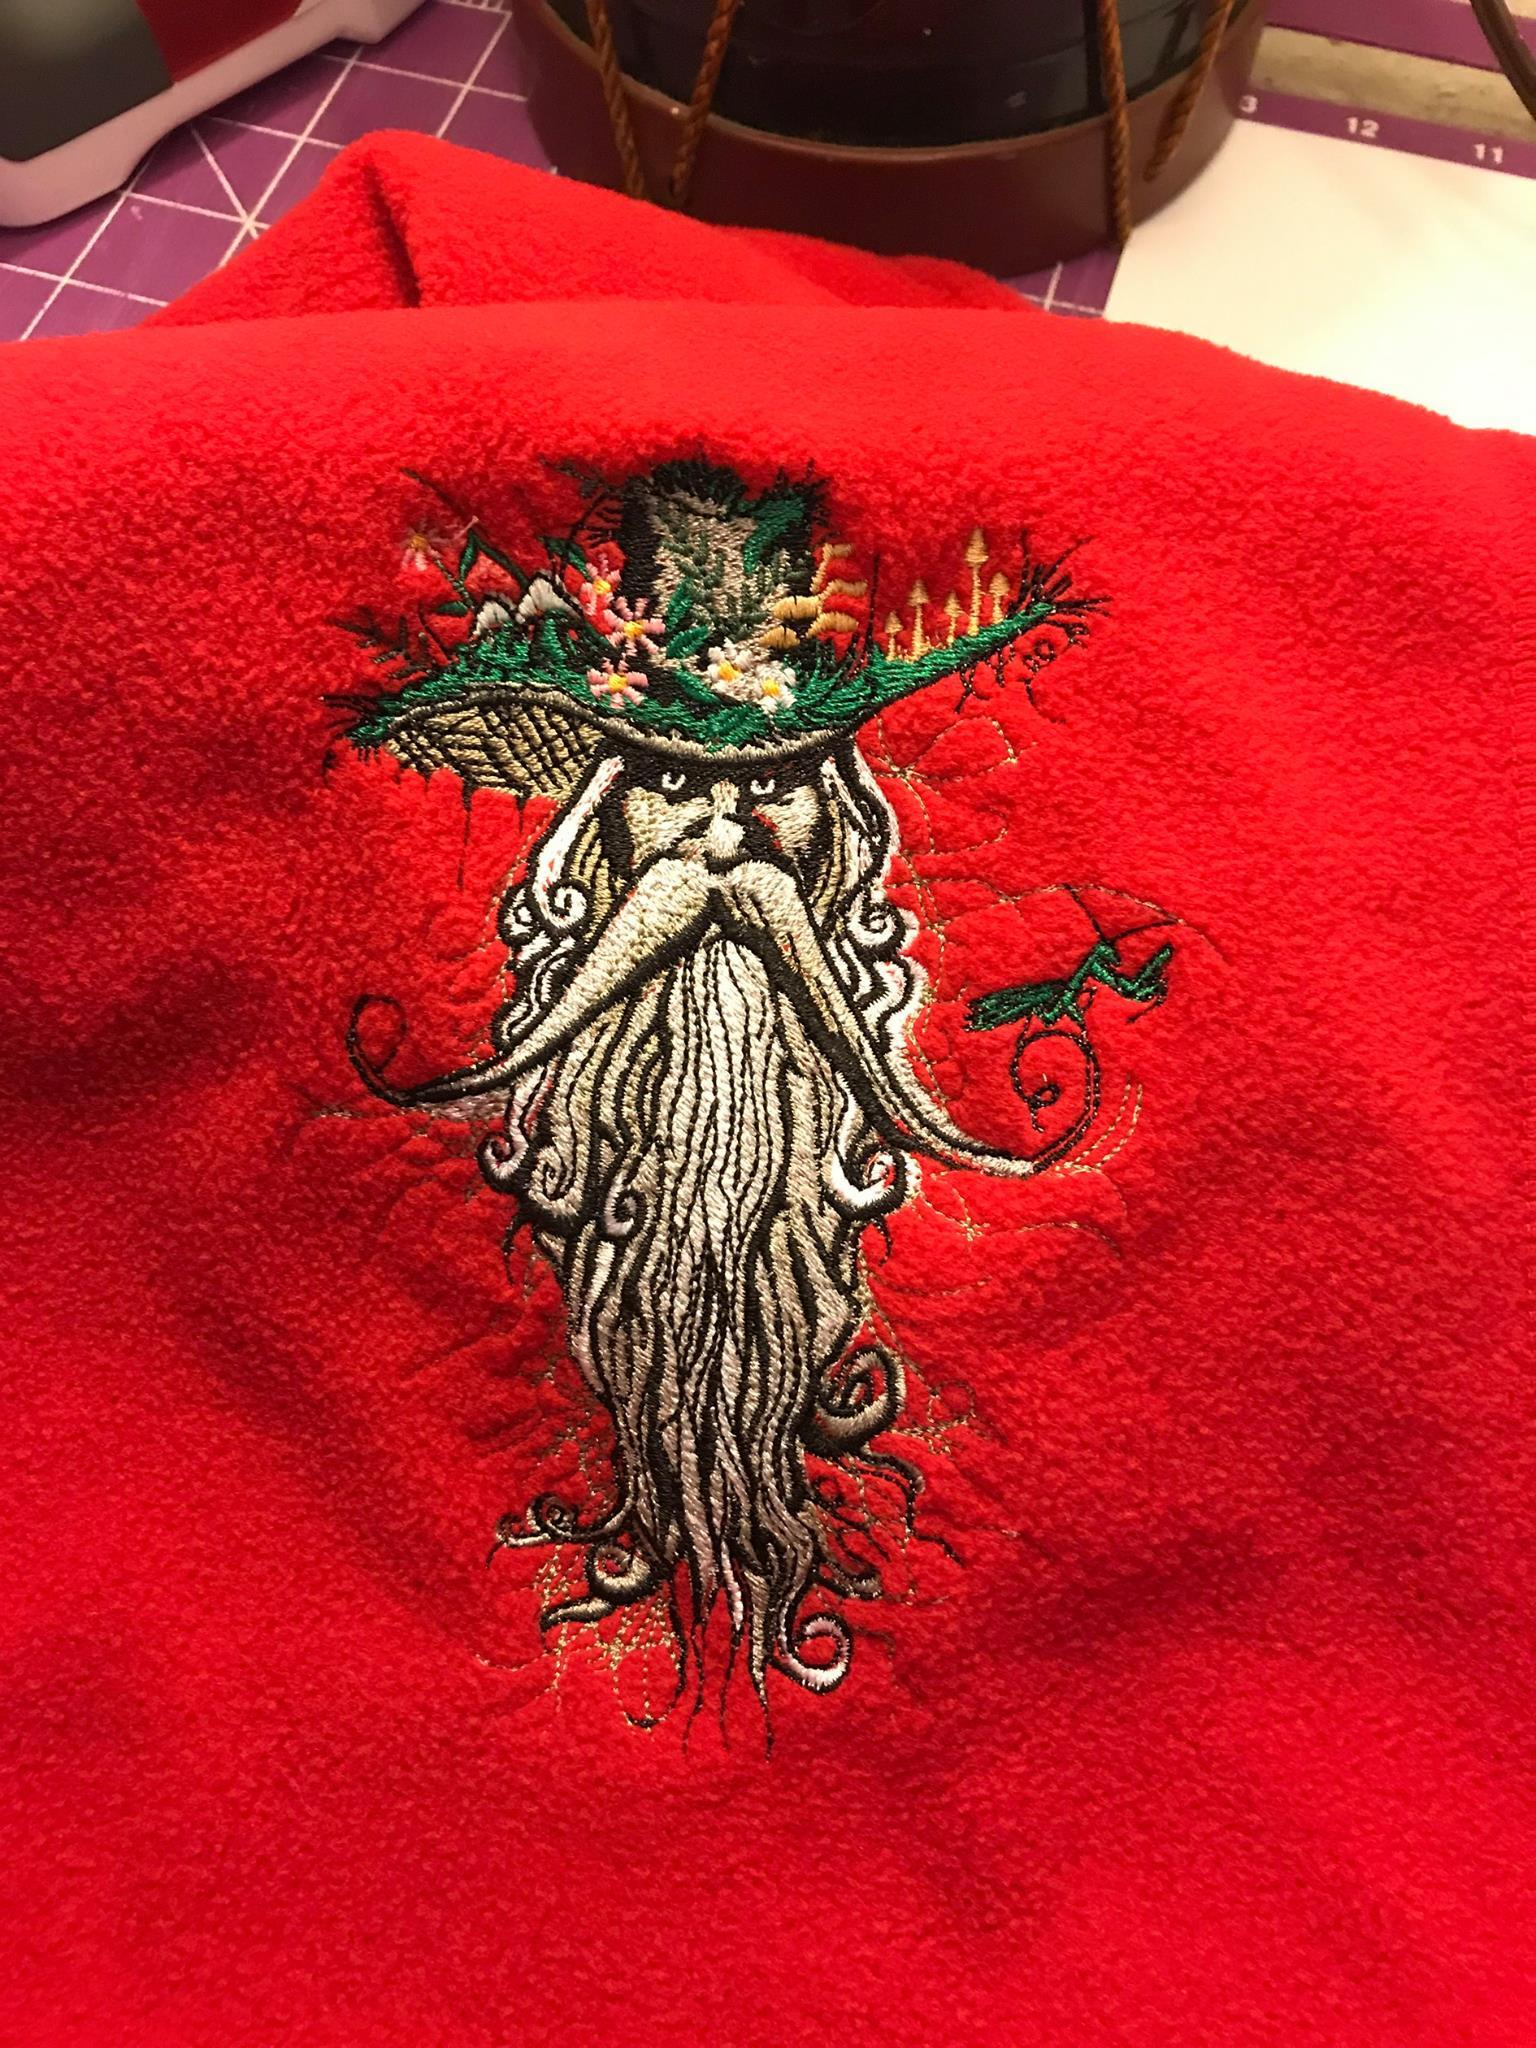 Root man embroidery design